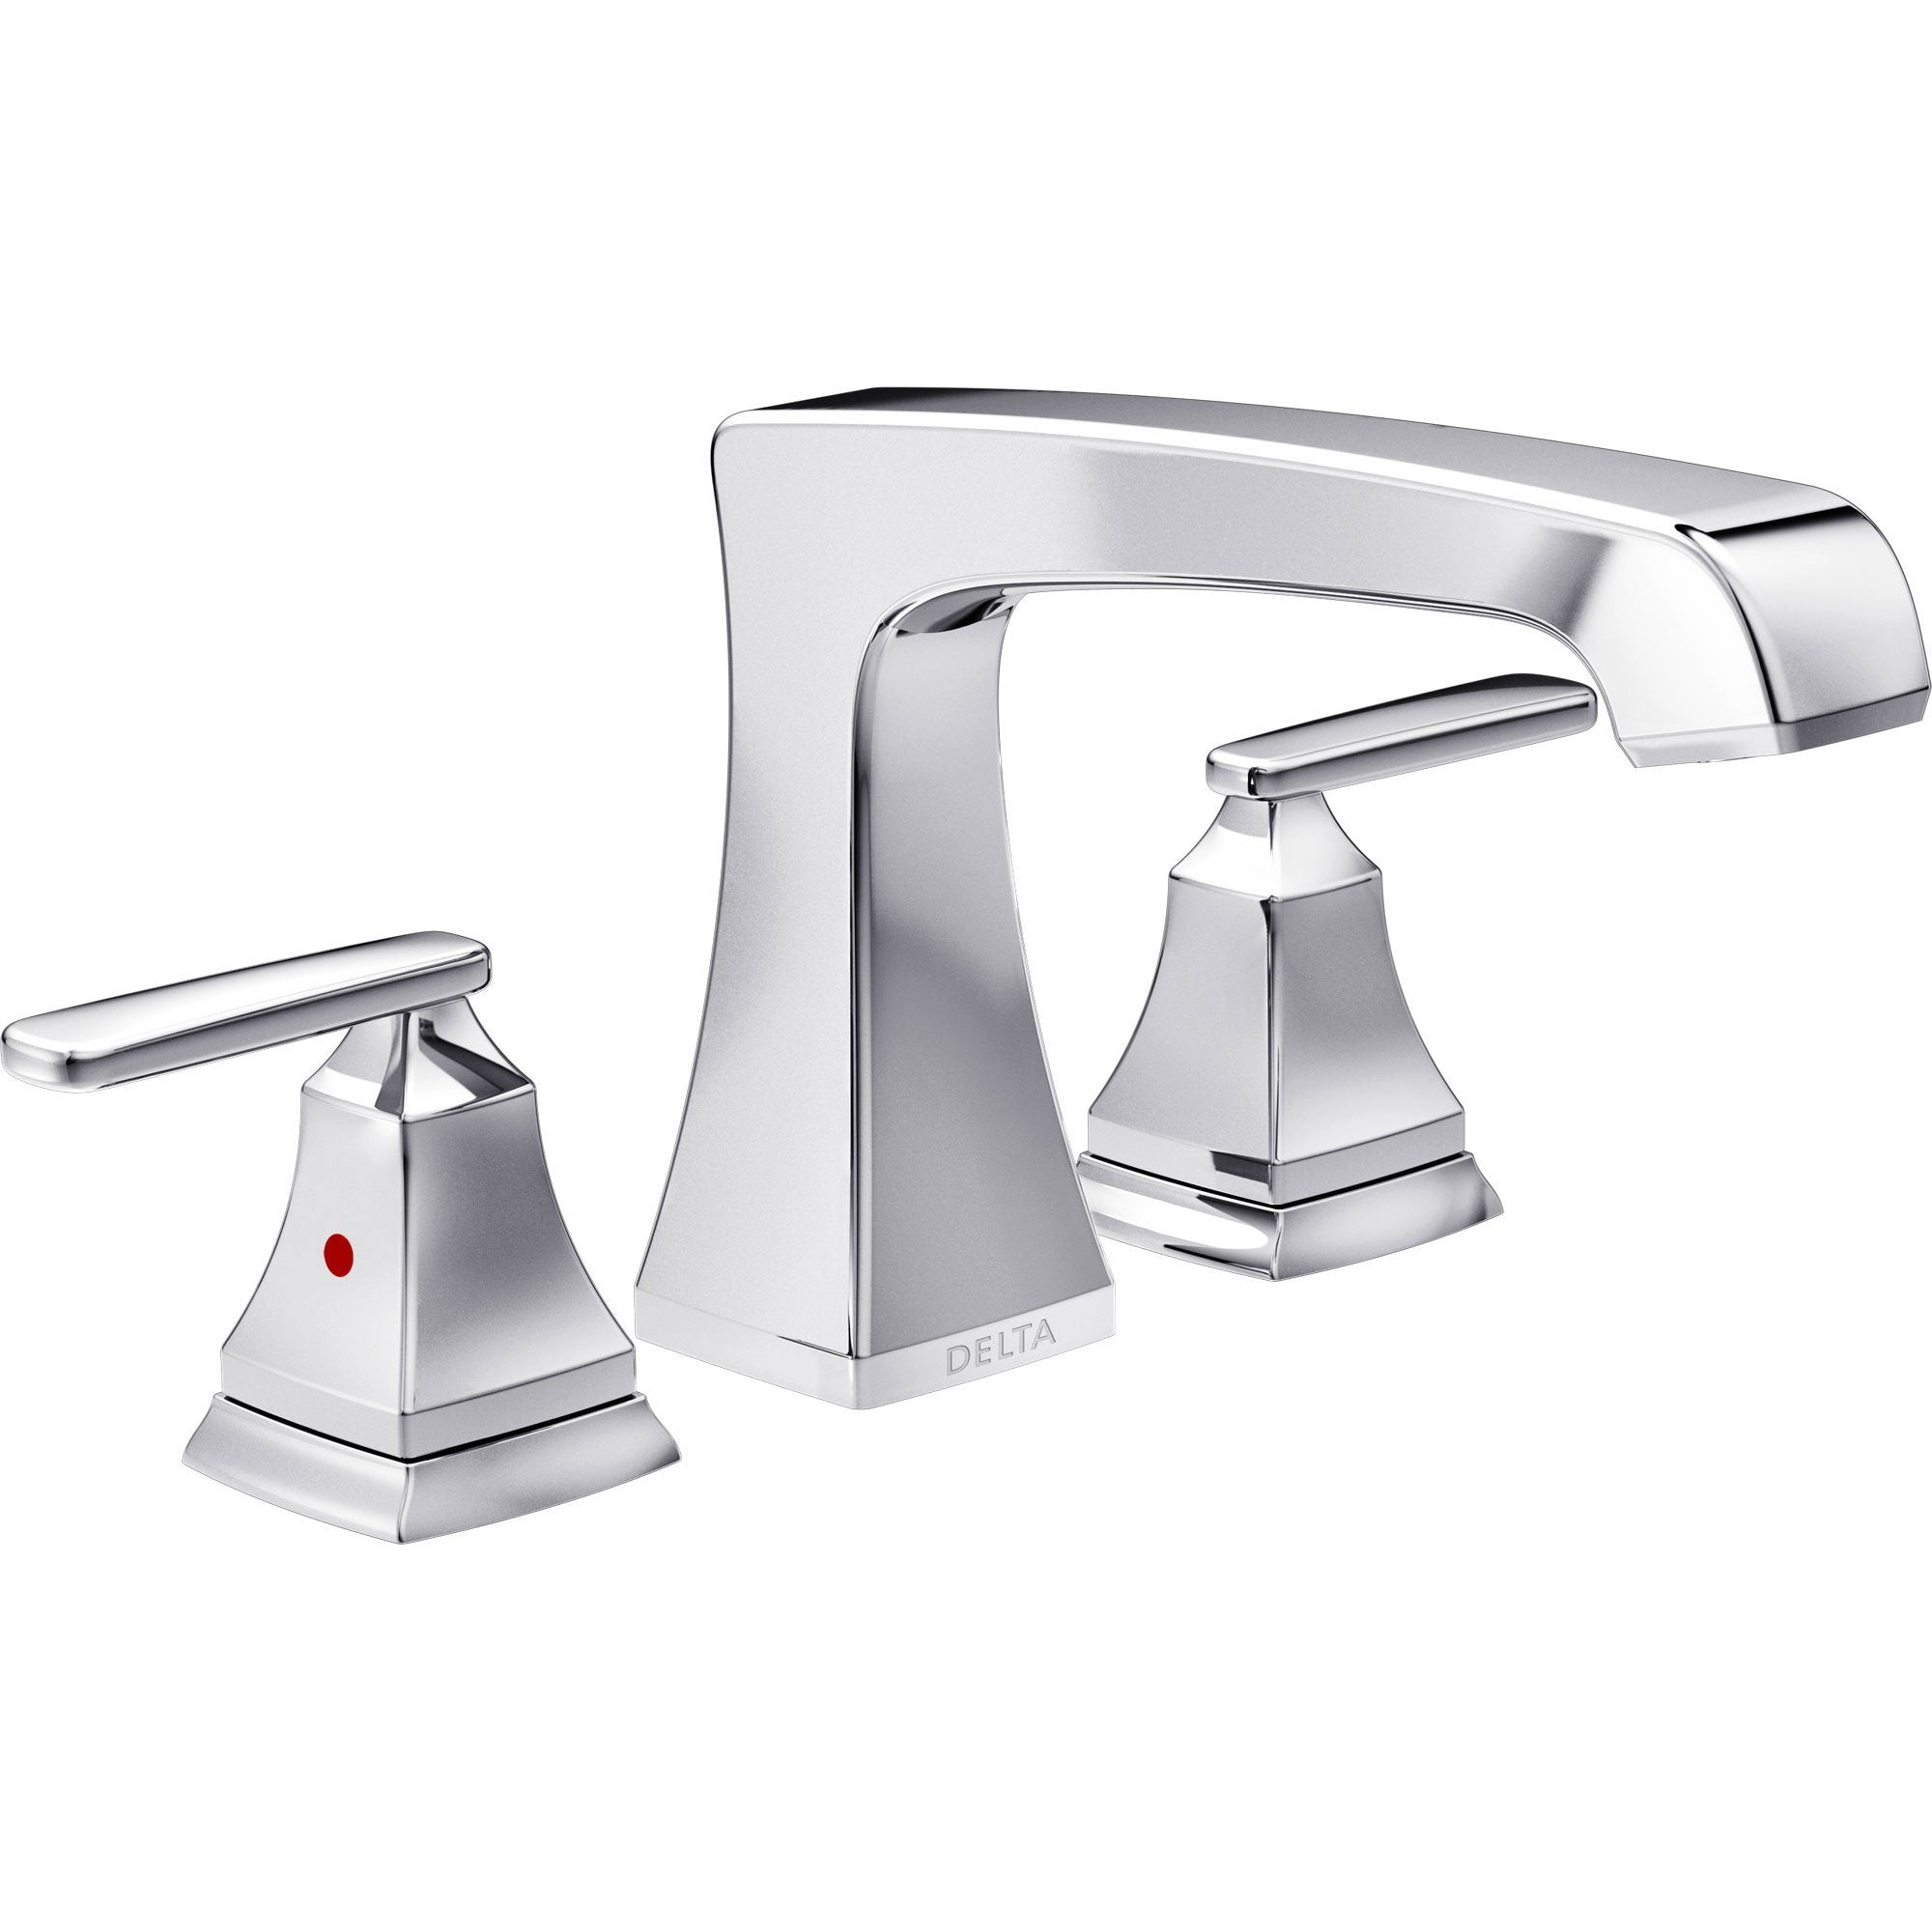 Delta Ashlyn Modern Chrome Finish Roman Tub Filler Faucet INCLUDES Valve and Lever Handles D1094V